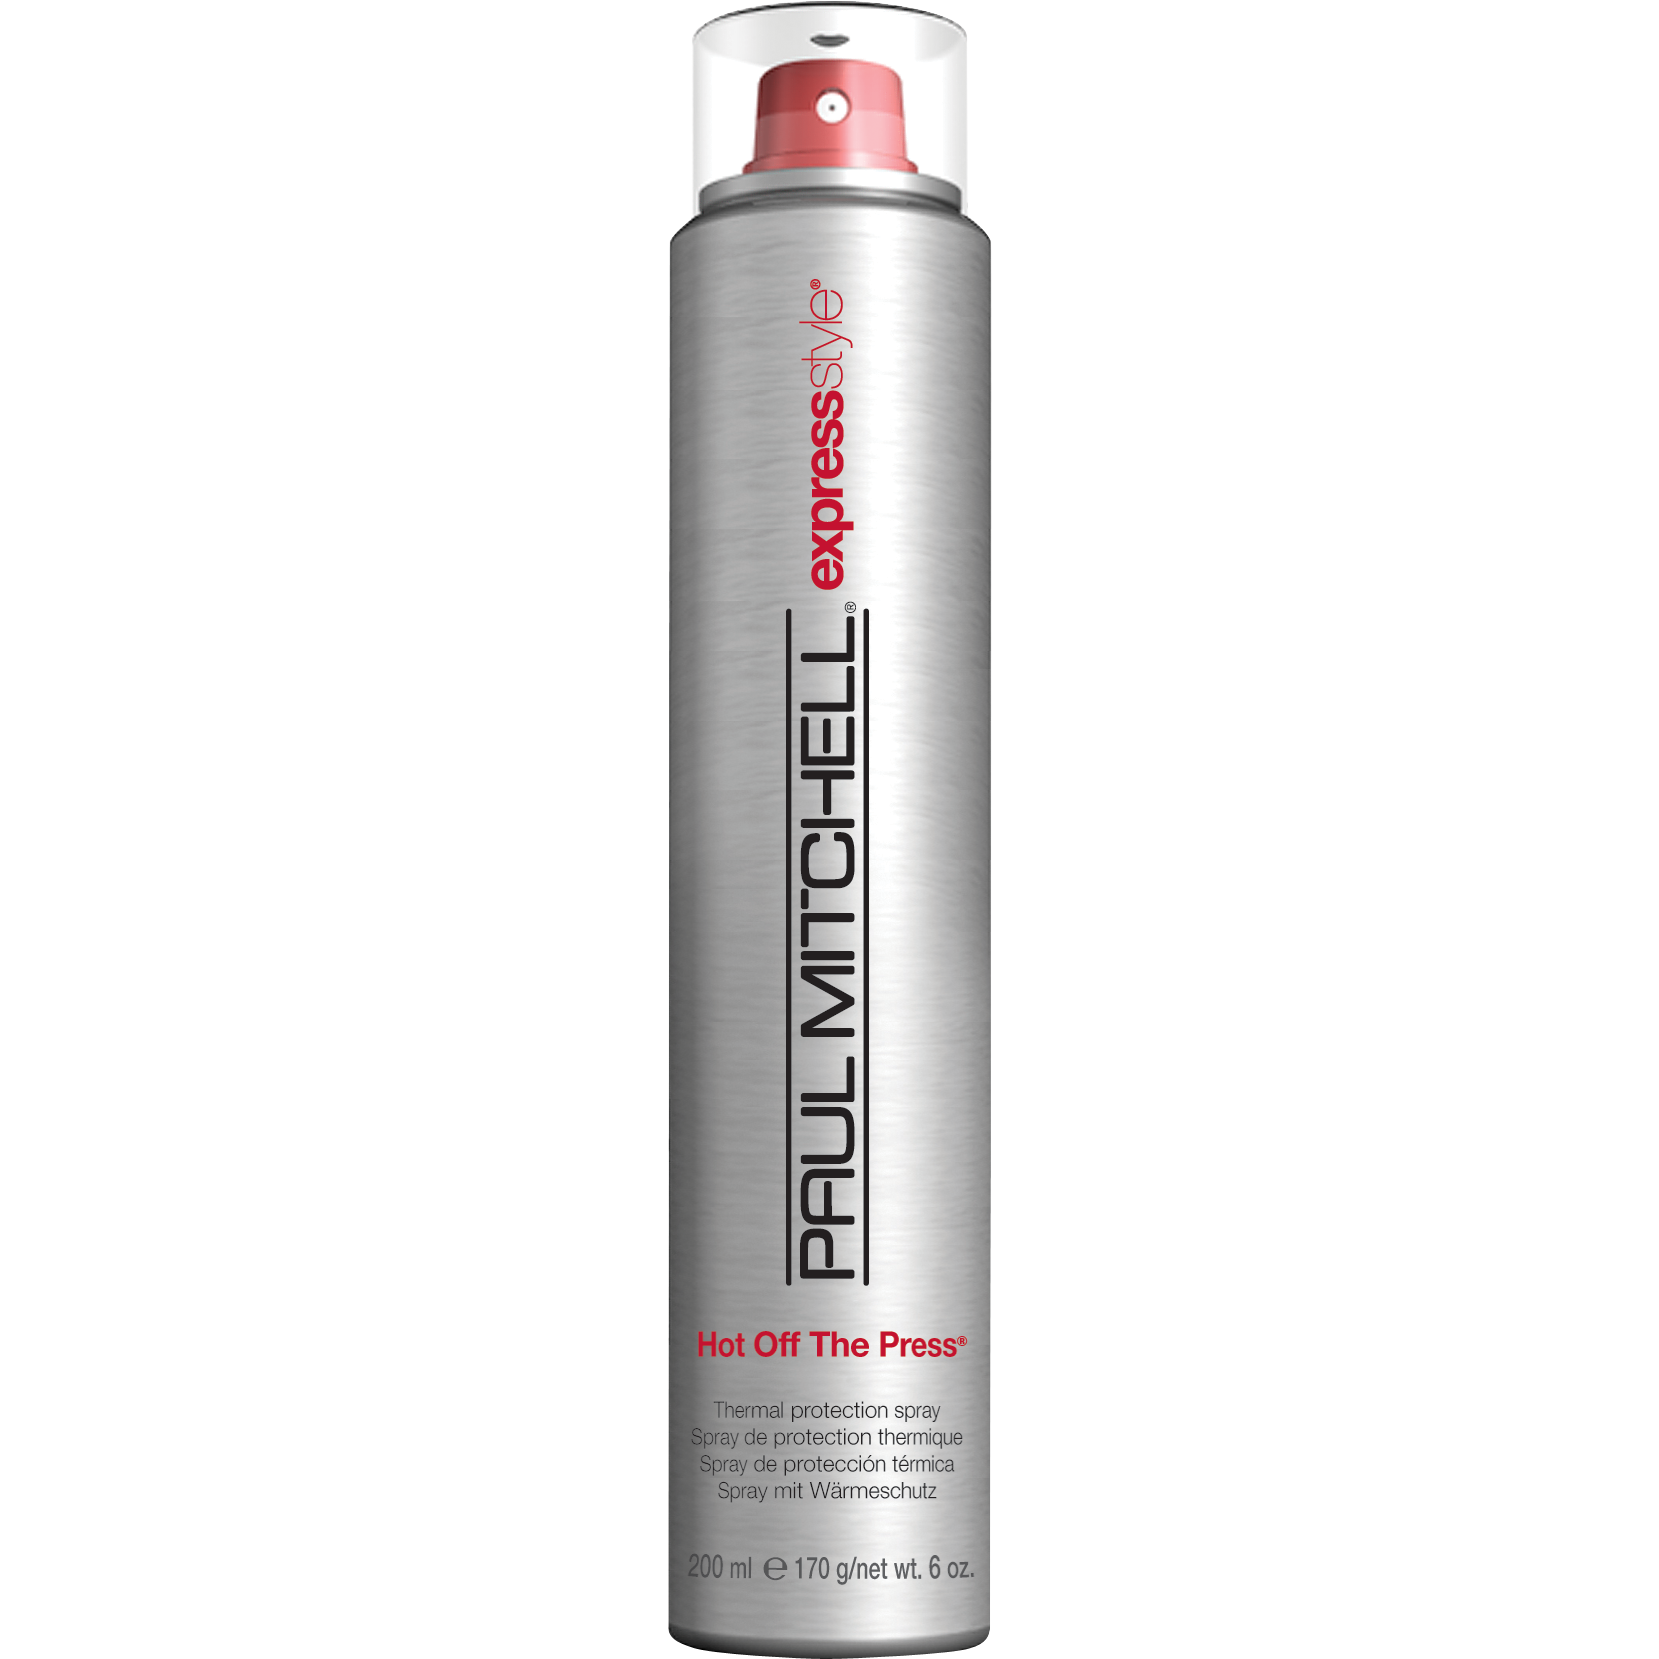 PAUL MITCHELL EXPRESSSTYLE HOT OFF THE PRESS 6 OZ